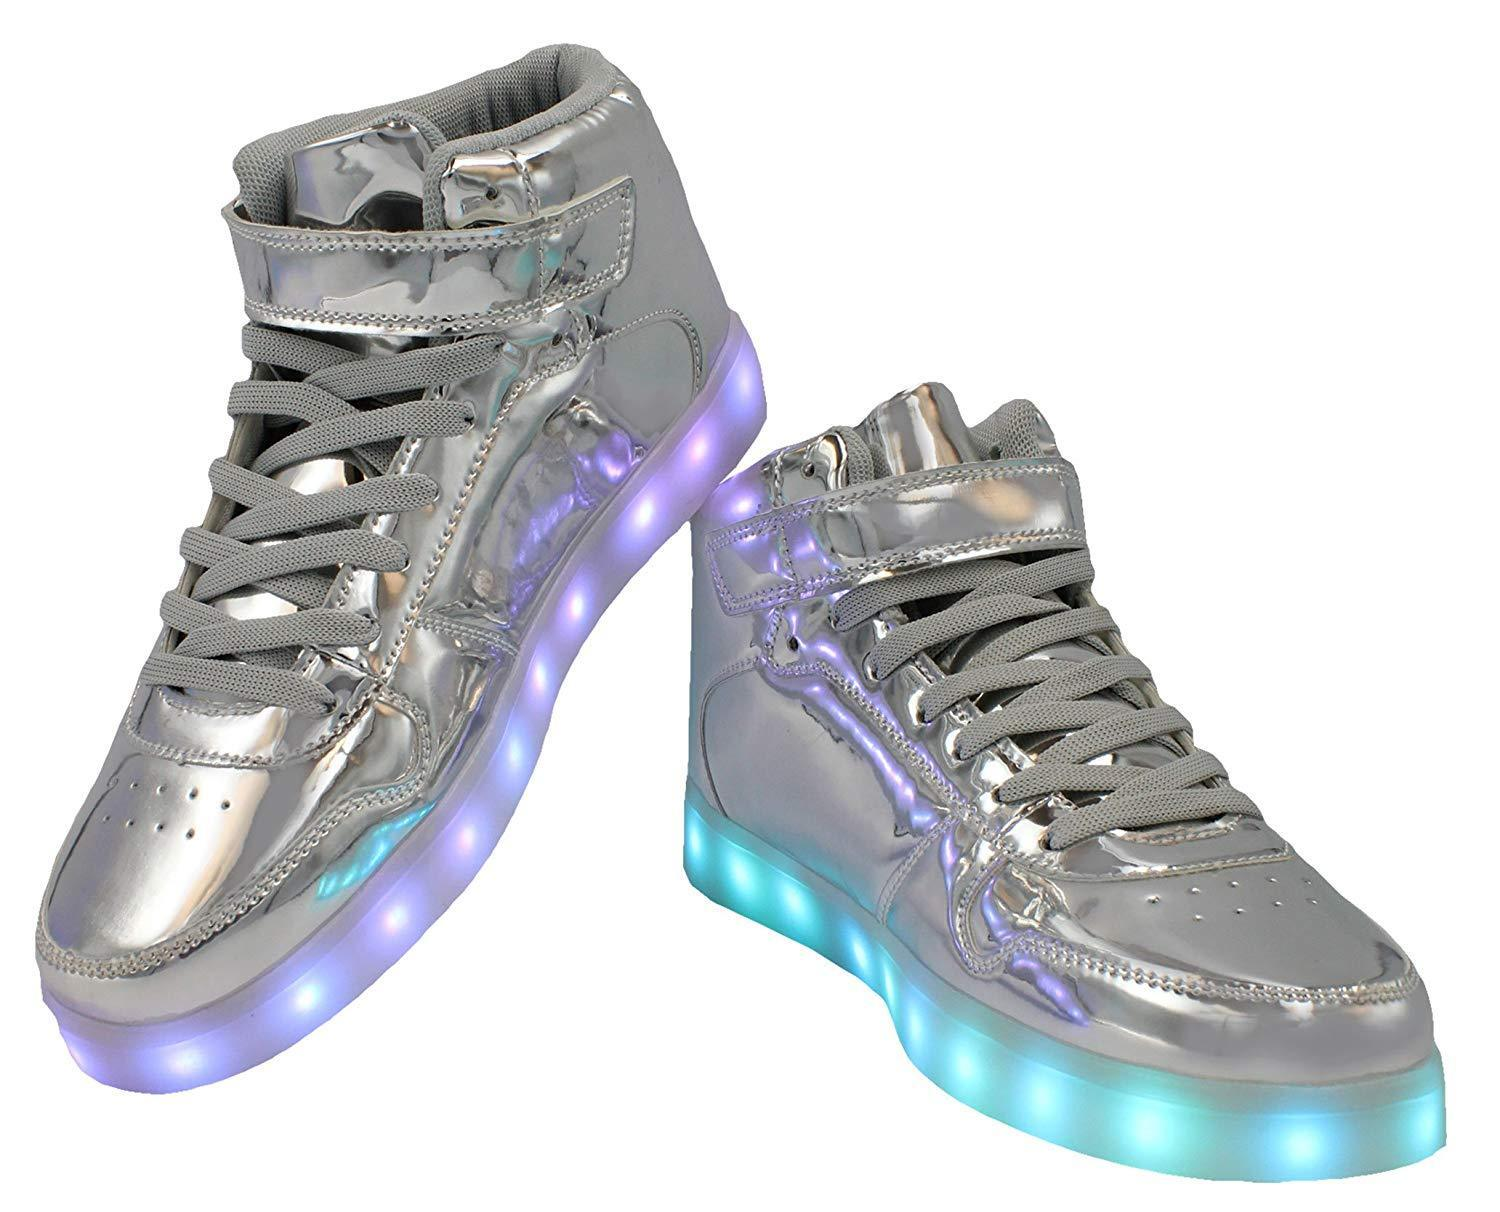 f21c113f08d1e Details about Galaxy LED Shoes Light Up USB Charging High Top Lace & Strap  Kids Sneakers Silv.